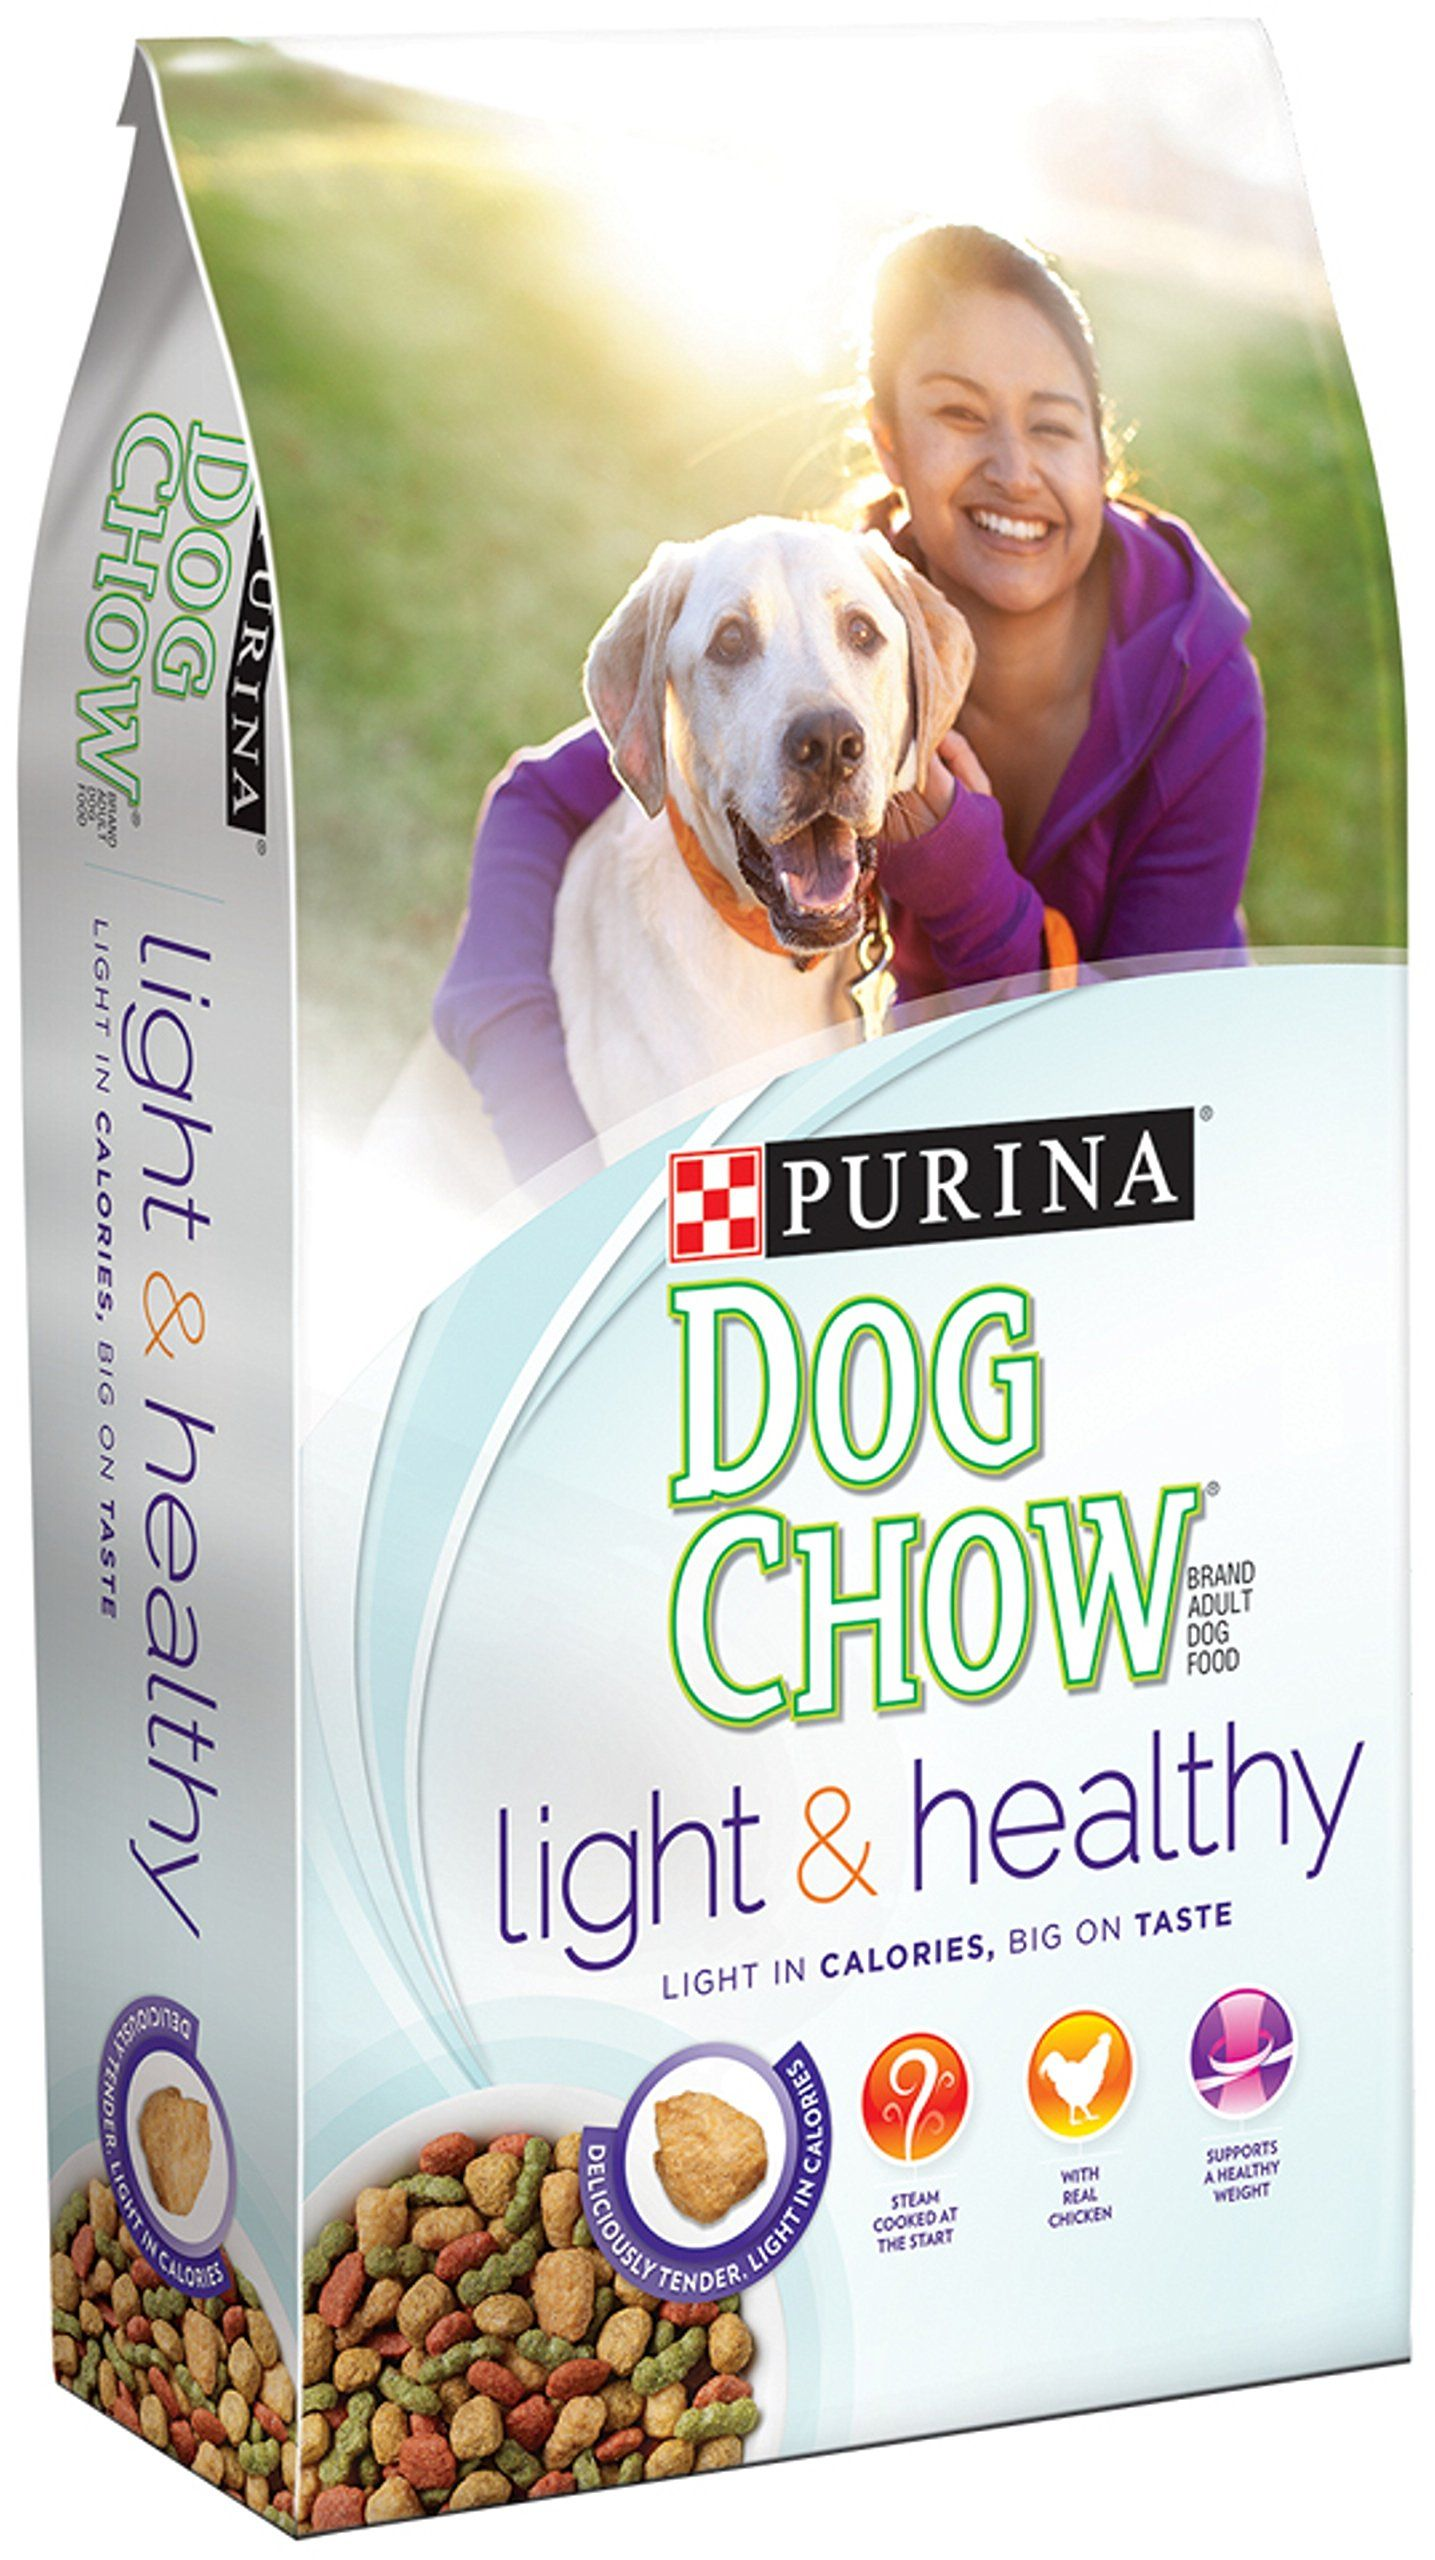 Purina Dog Chow Light And Healthy Dog Food 16 5lb You Can Get More Details By Clicking On The Image This Is Purina Dog Chow Diet Dog Food Dog Food Recipes